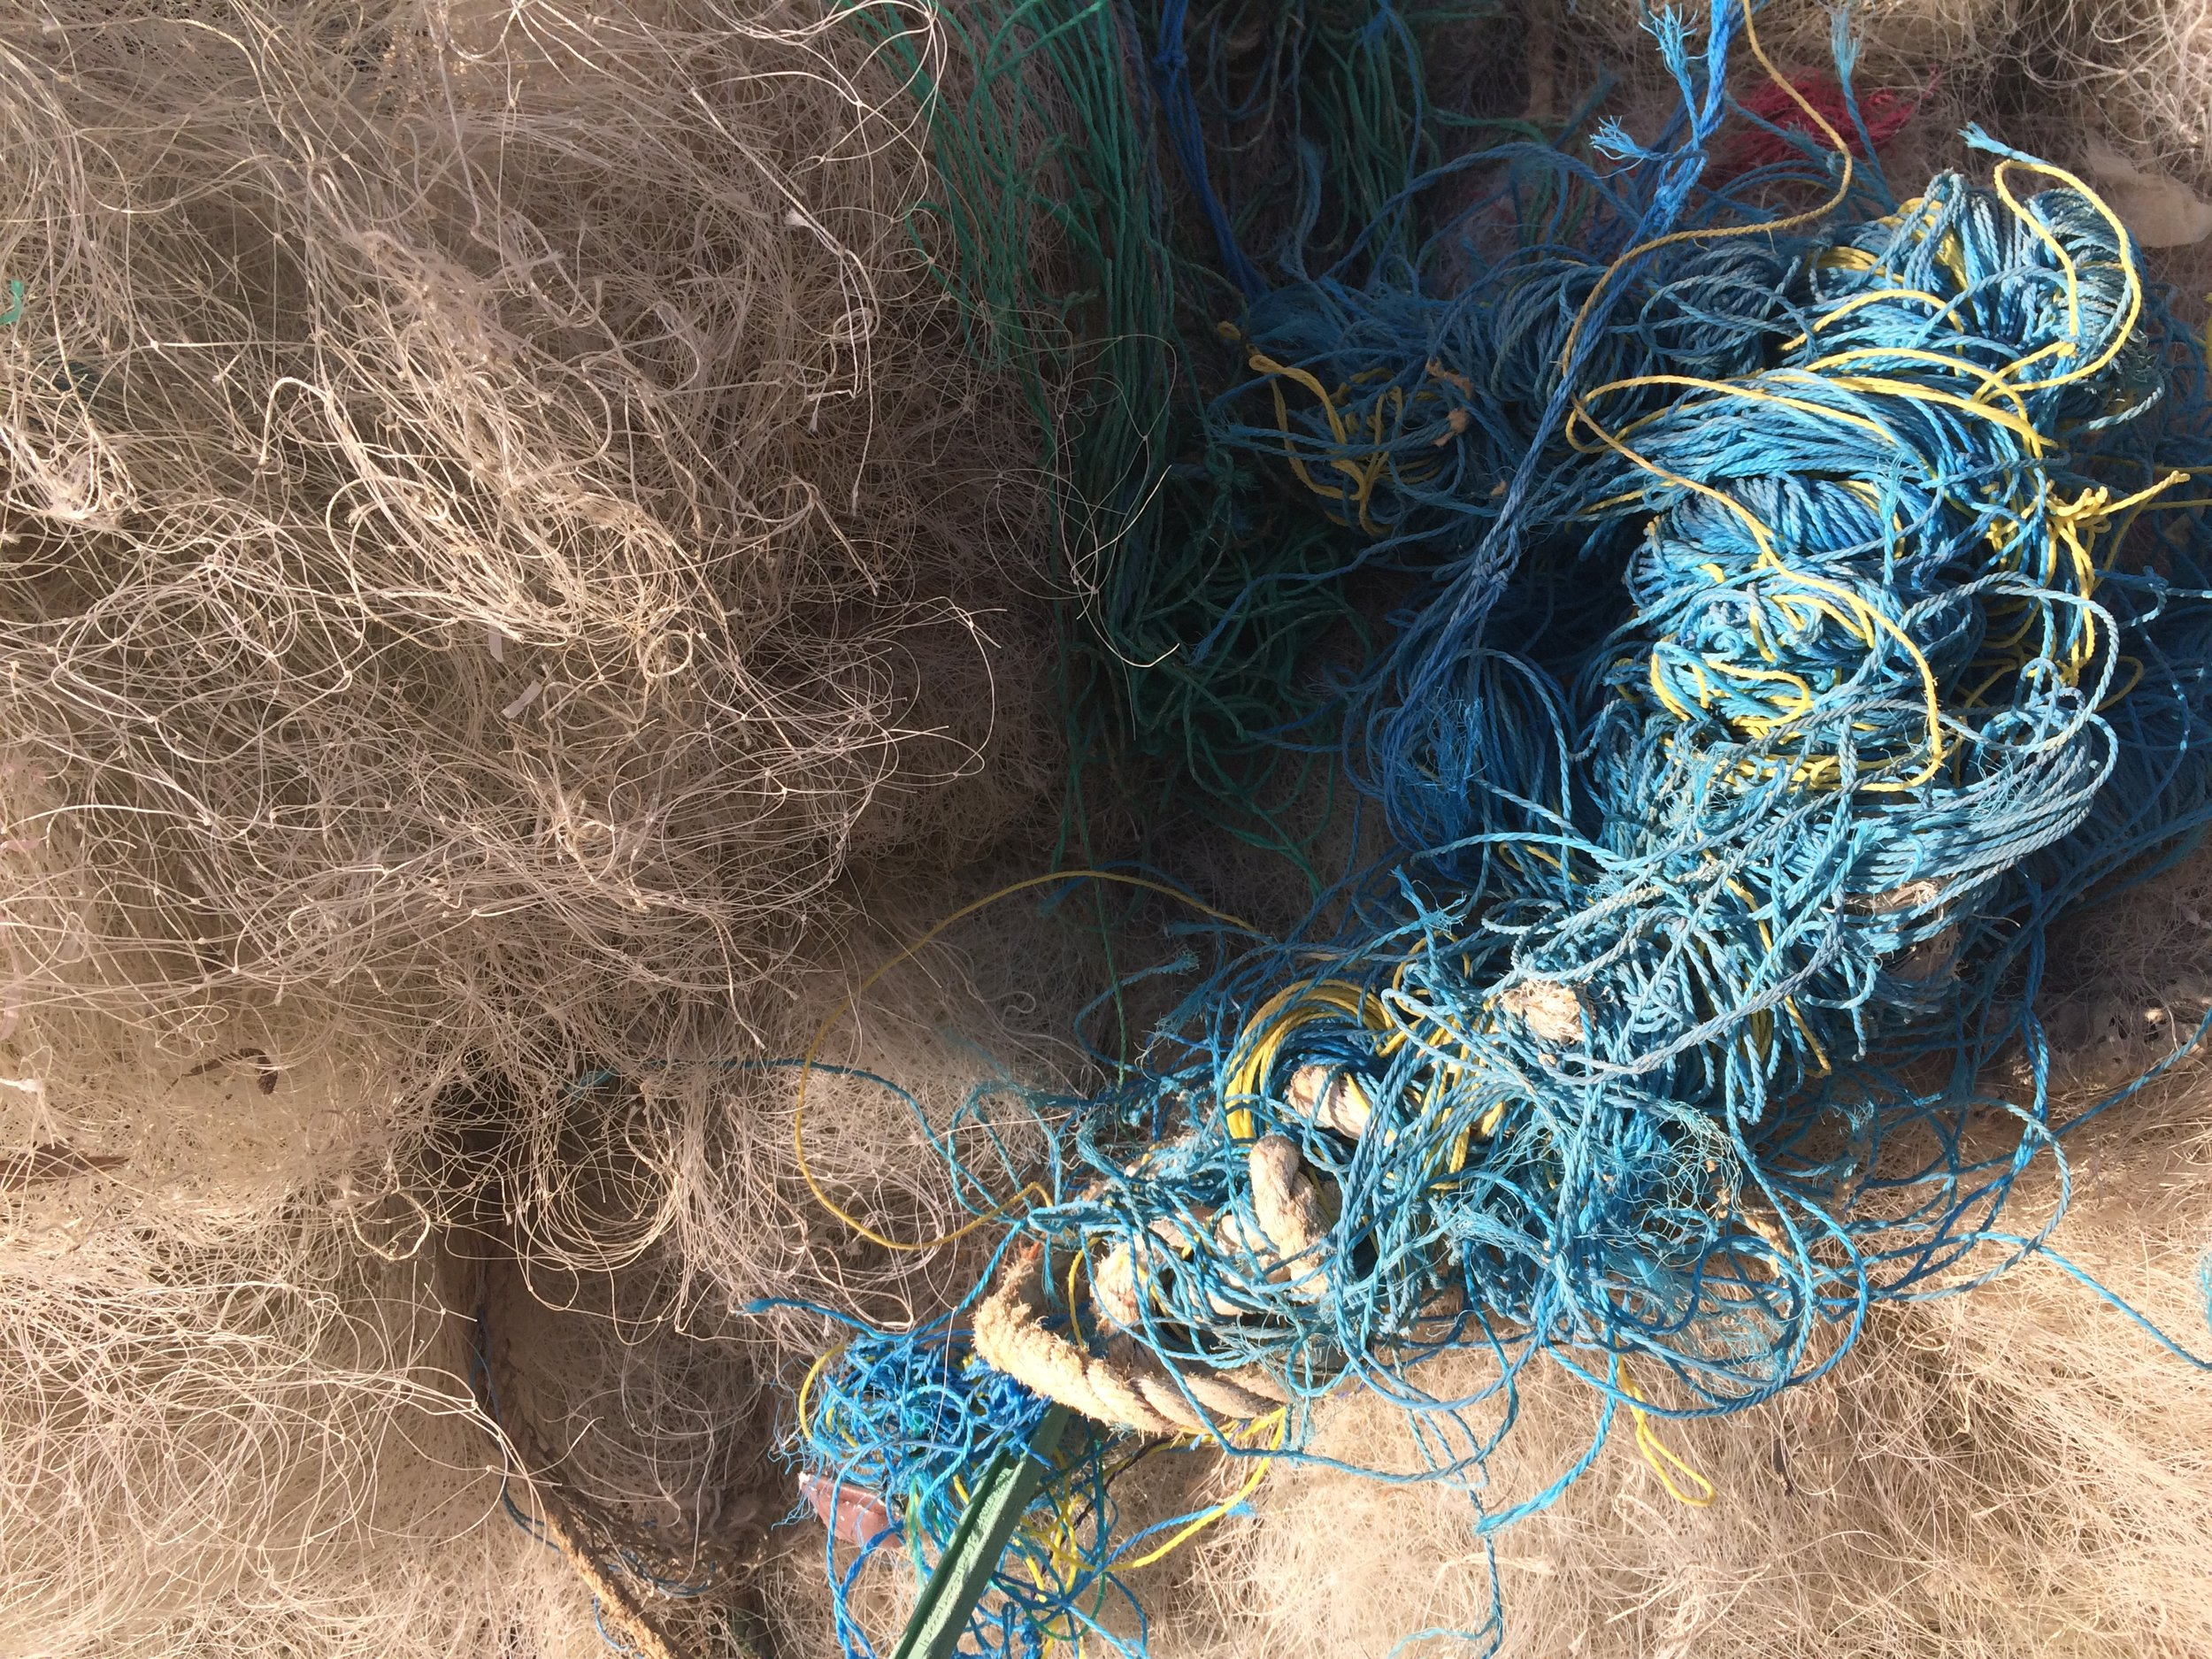 Monofilament, nylon and polyester fishing nets